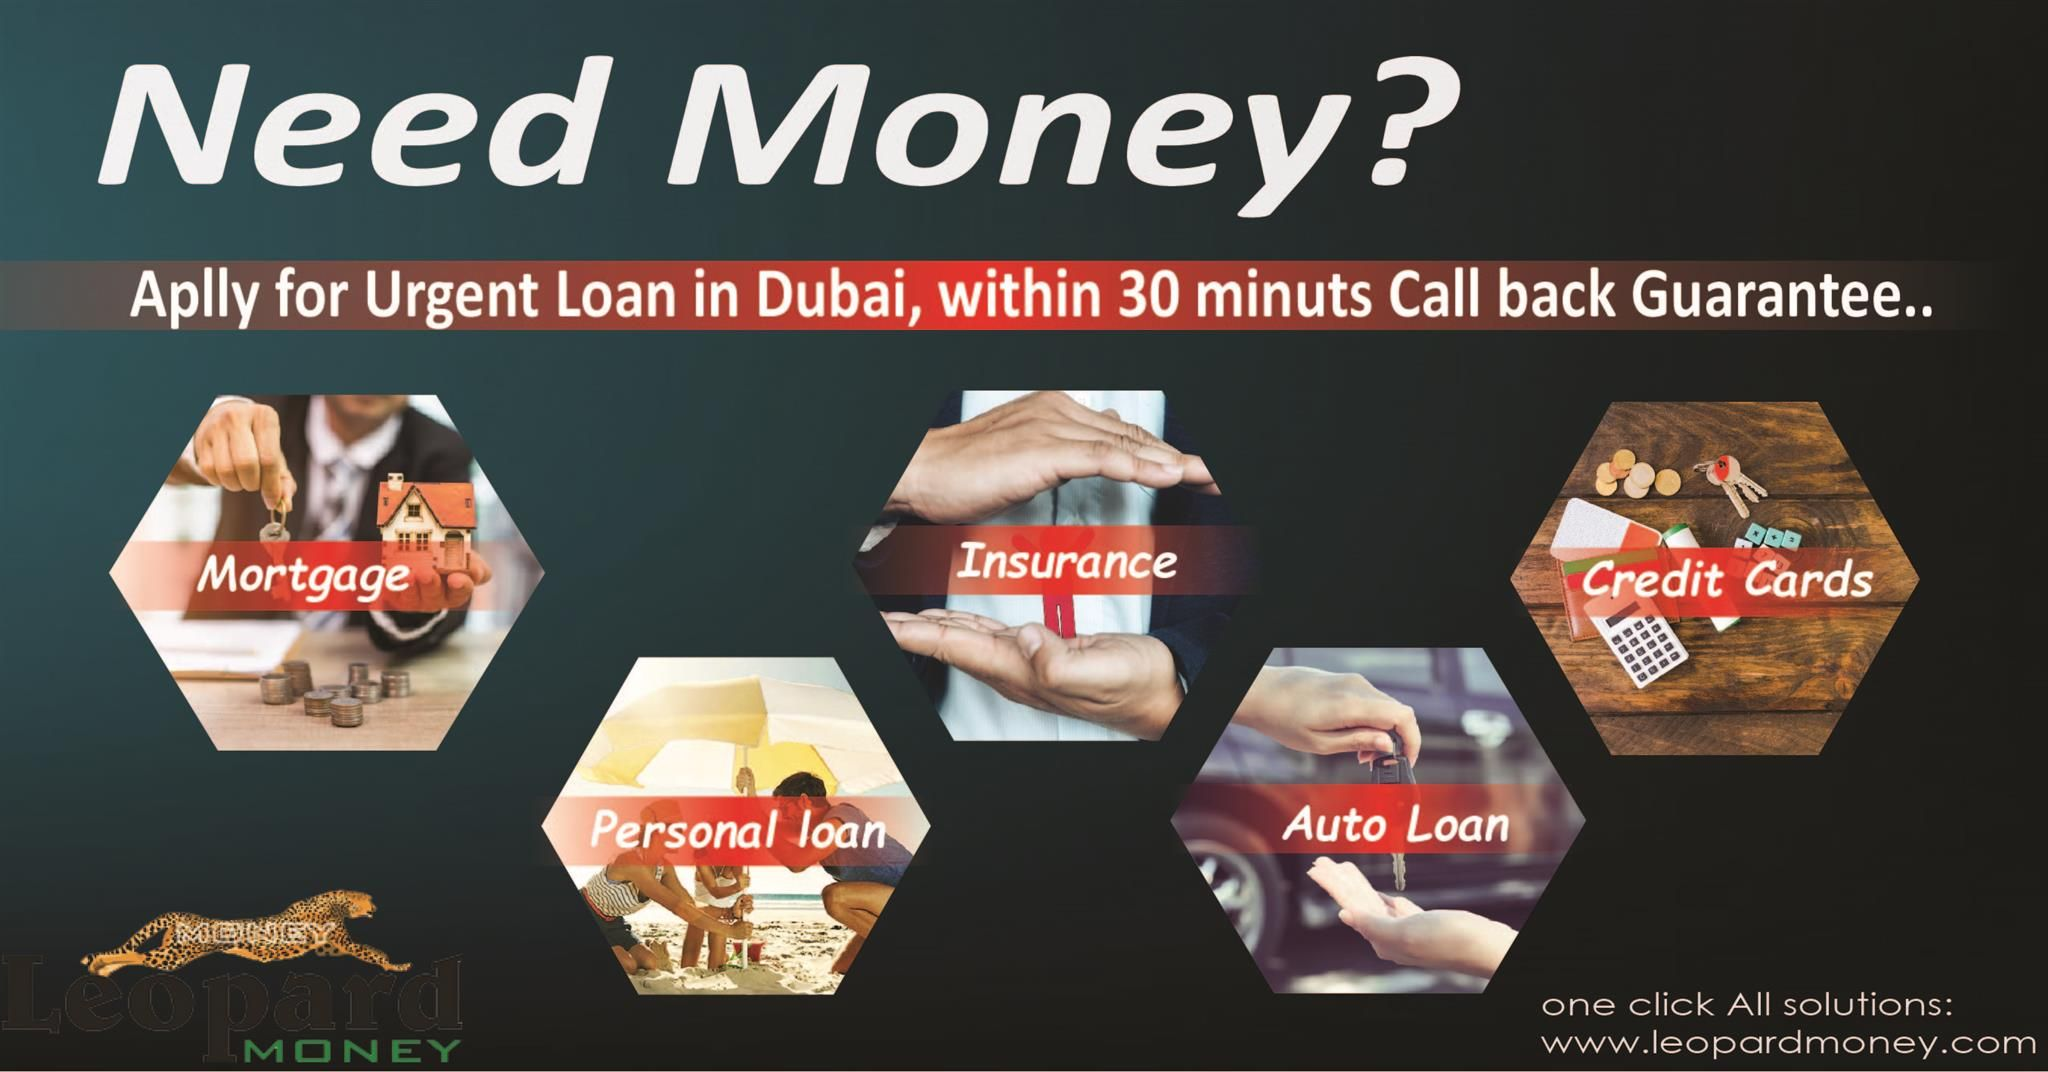 Noor Bank Personal Loan Noor Islamic Bank Nib Uae Dubai Personal Loans Loans For Poor Credit Loan